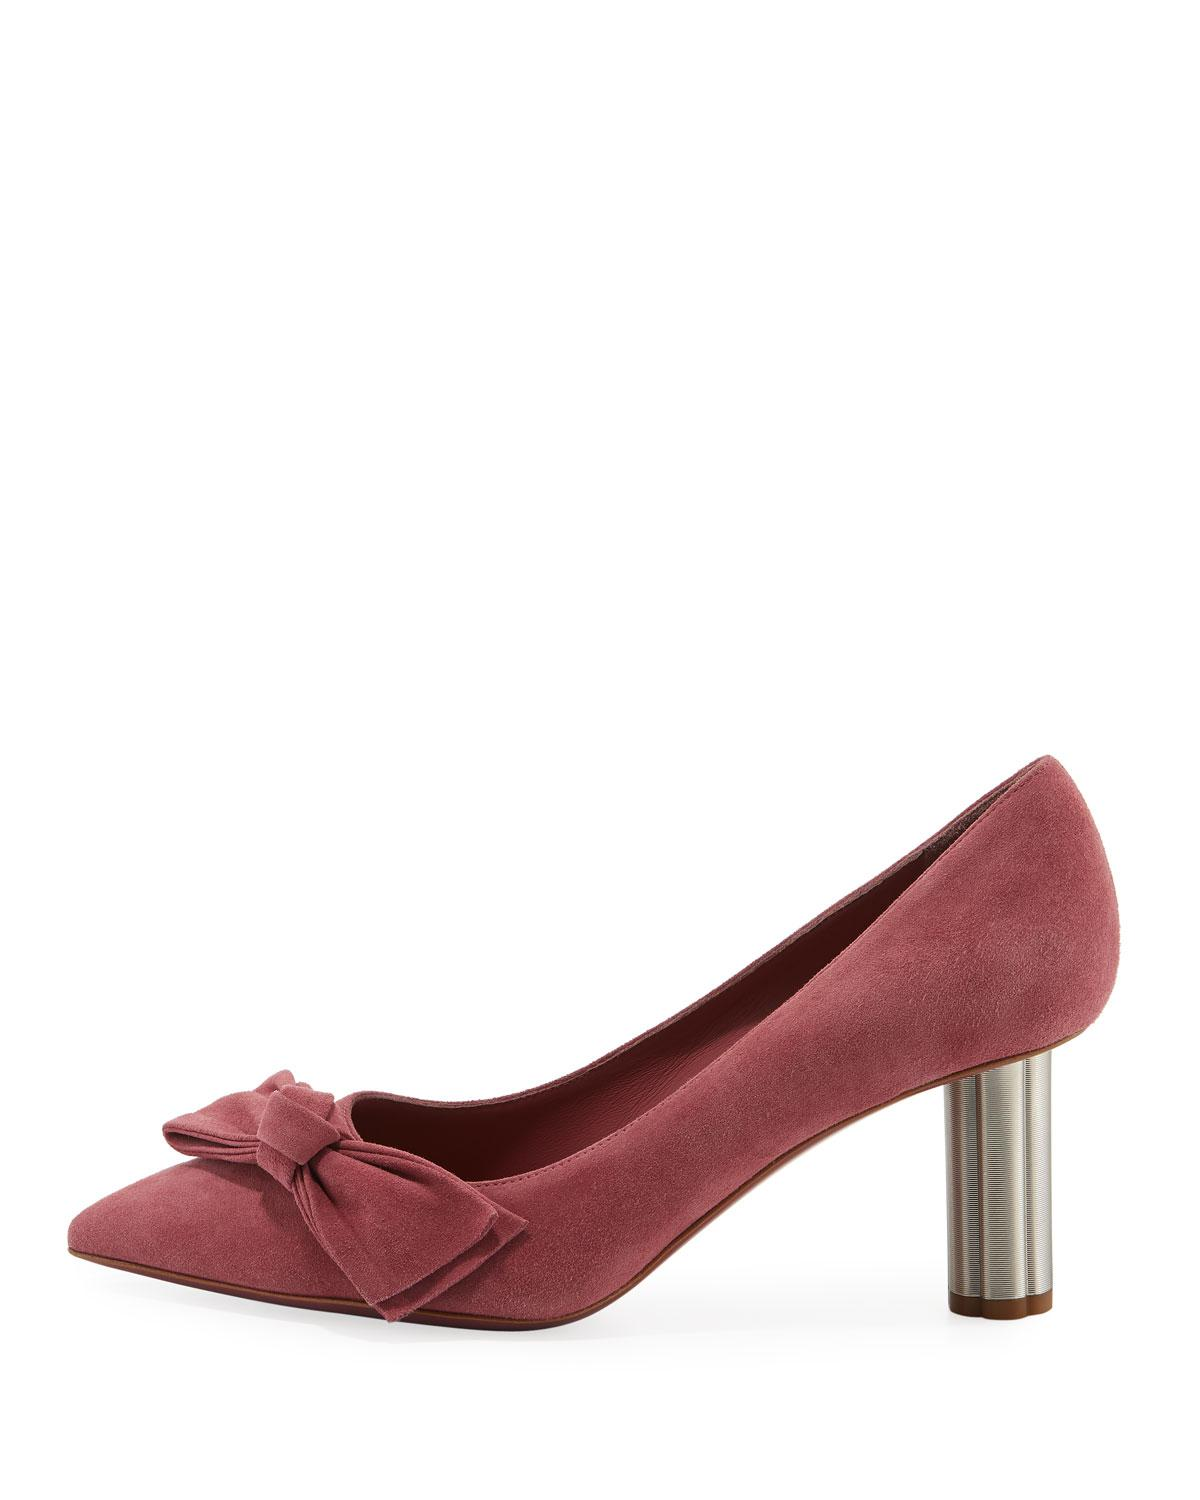 0016c8b2adb Lyst - Ferragamo Suede 70mm Pumps With Bow in Pink